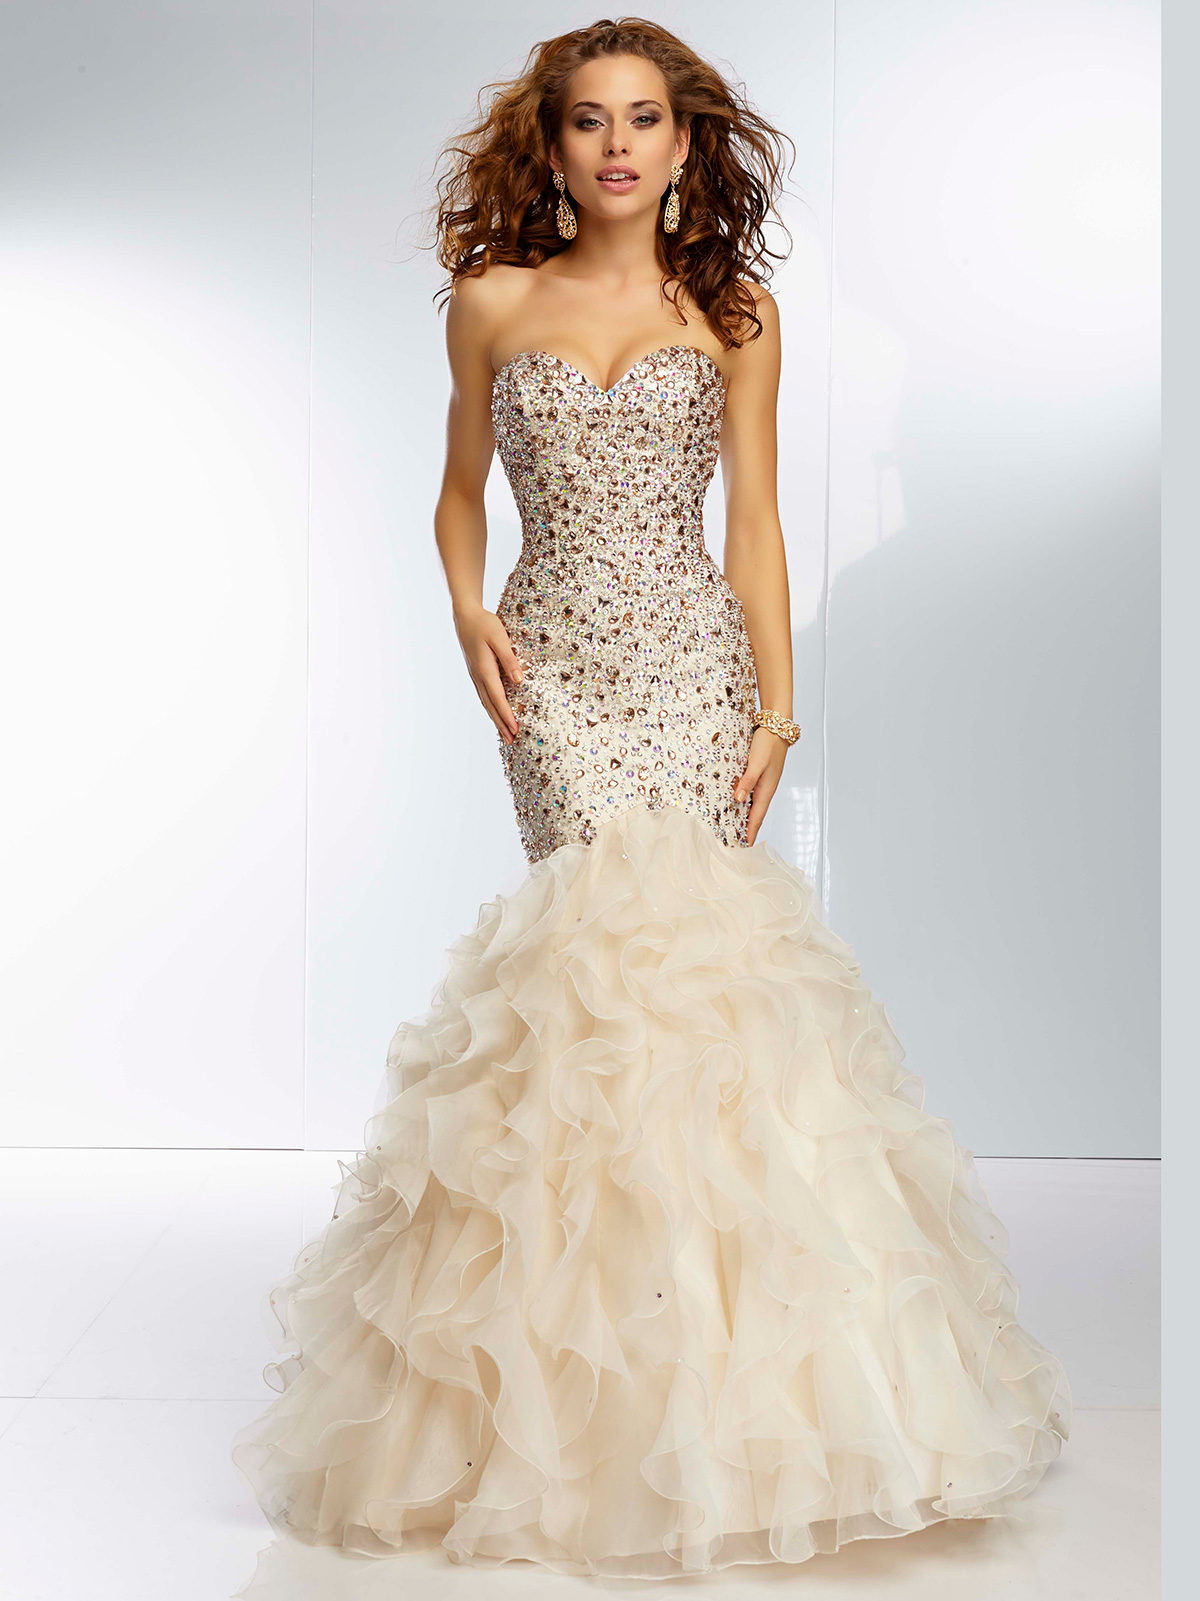 Perfect Prom Dresses King Of Prussia Mall Gift - Wedding Dress Ideas ...